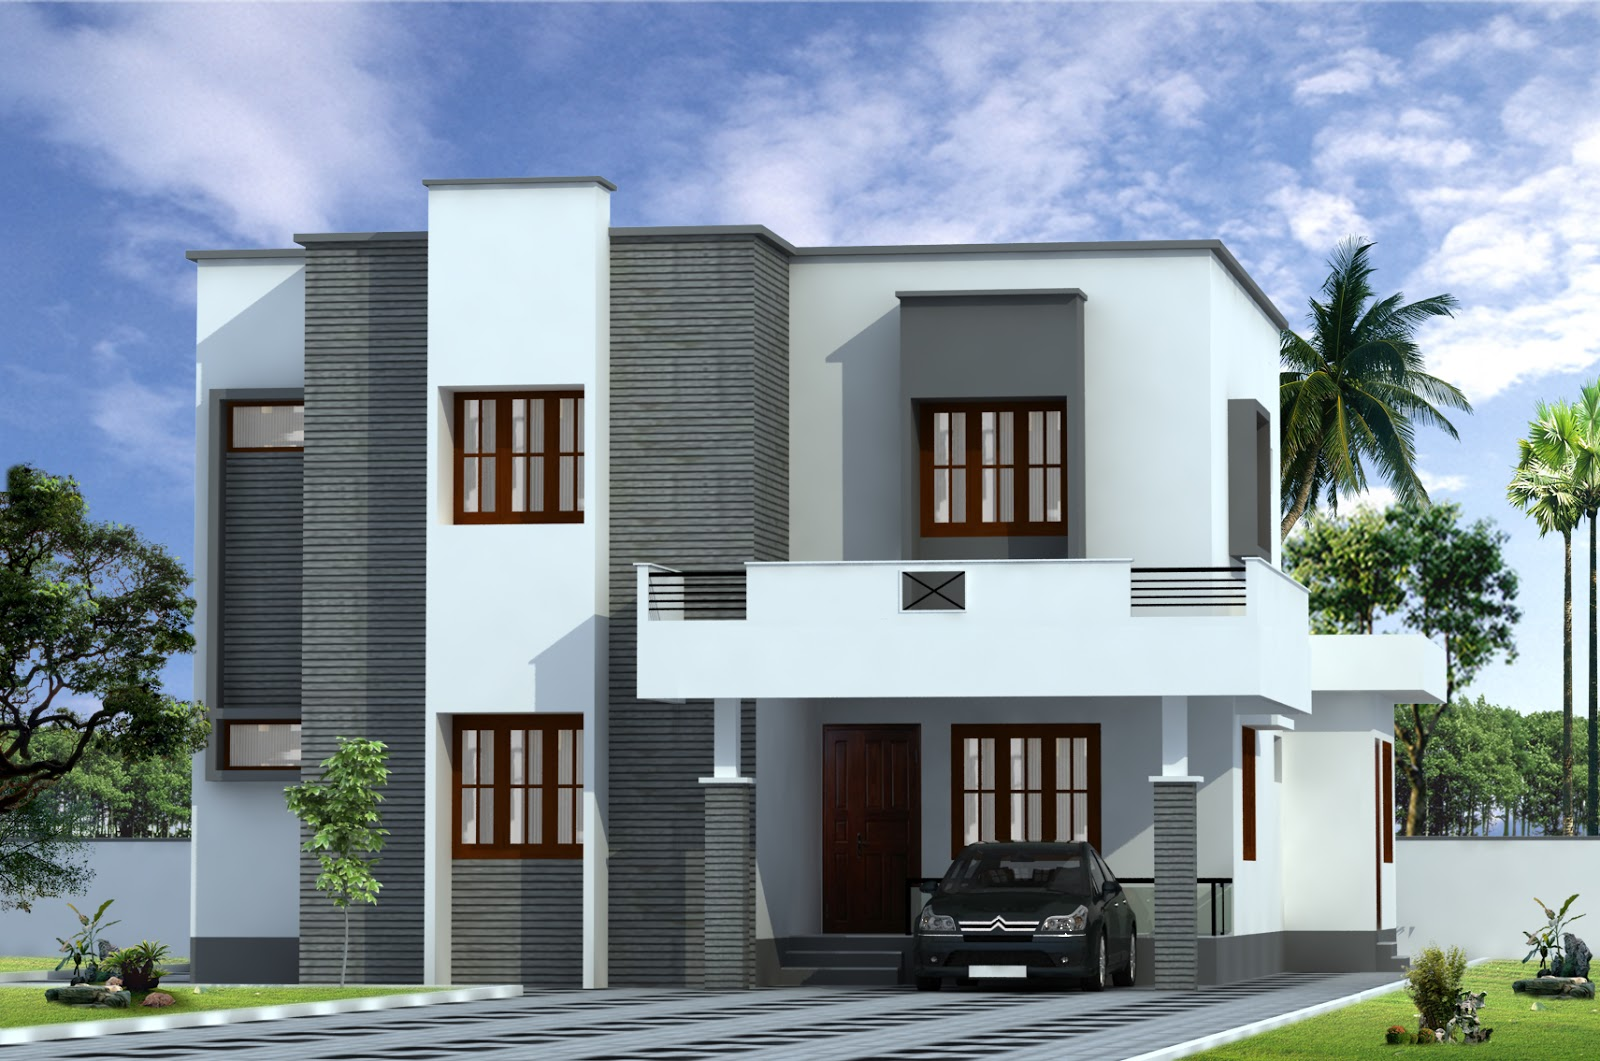 build a building house designs On design of building house